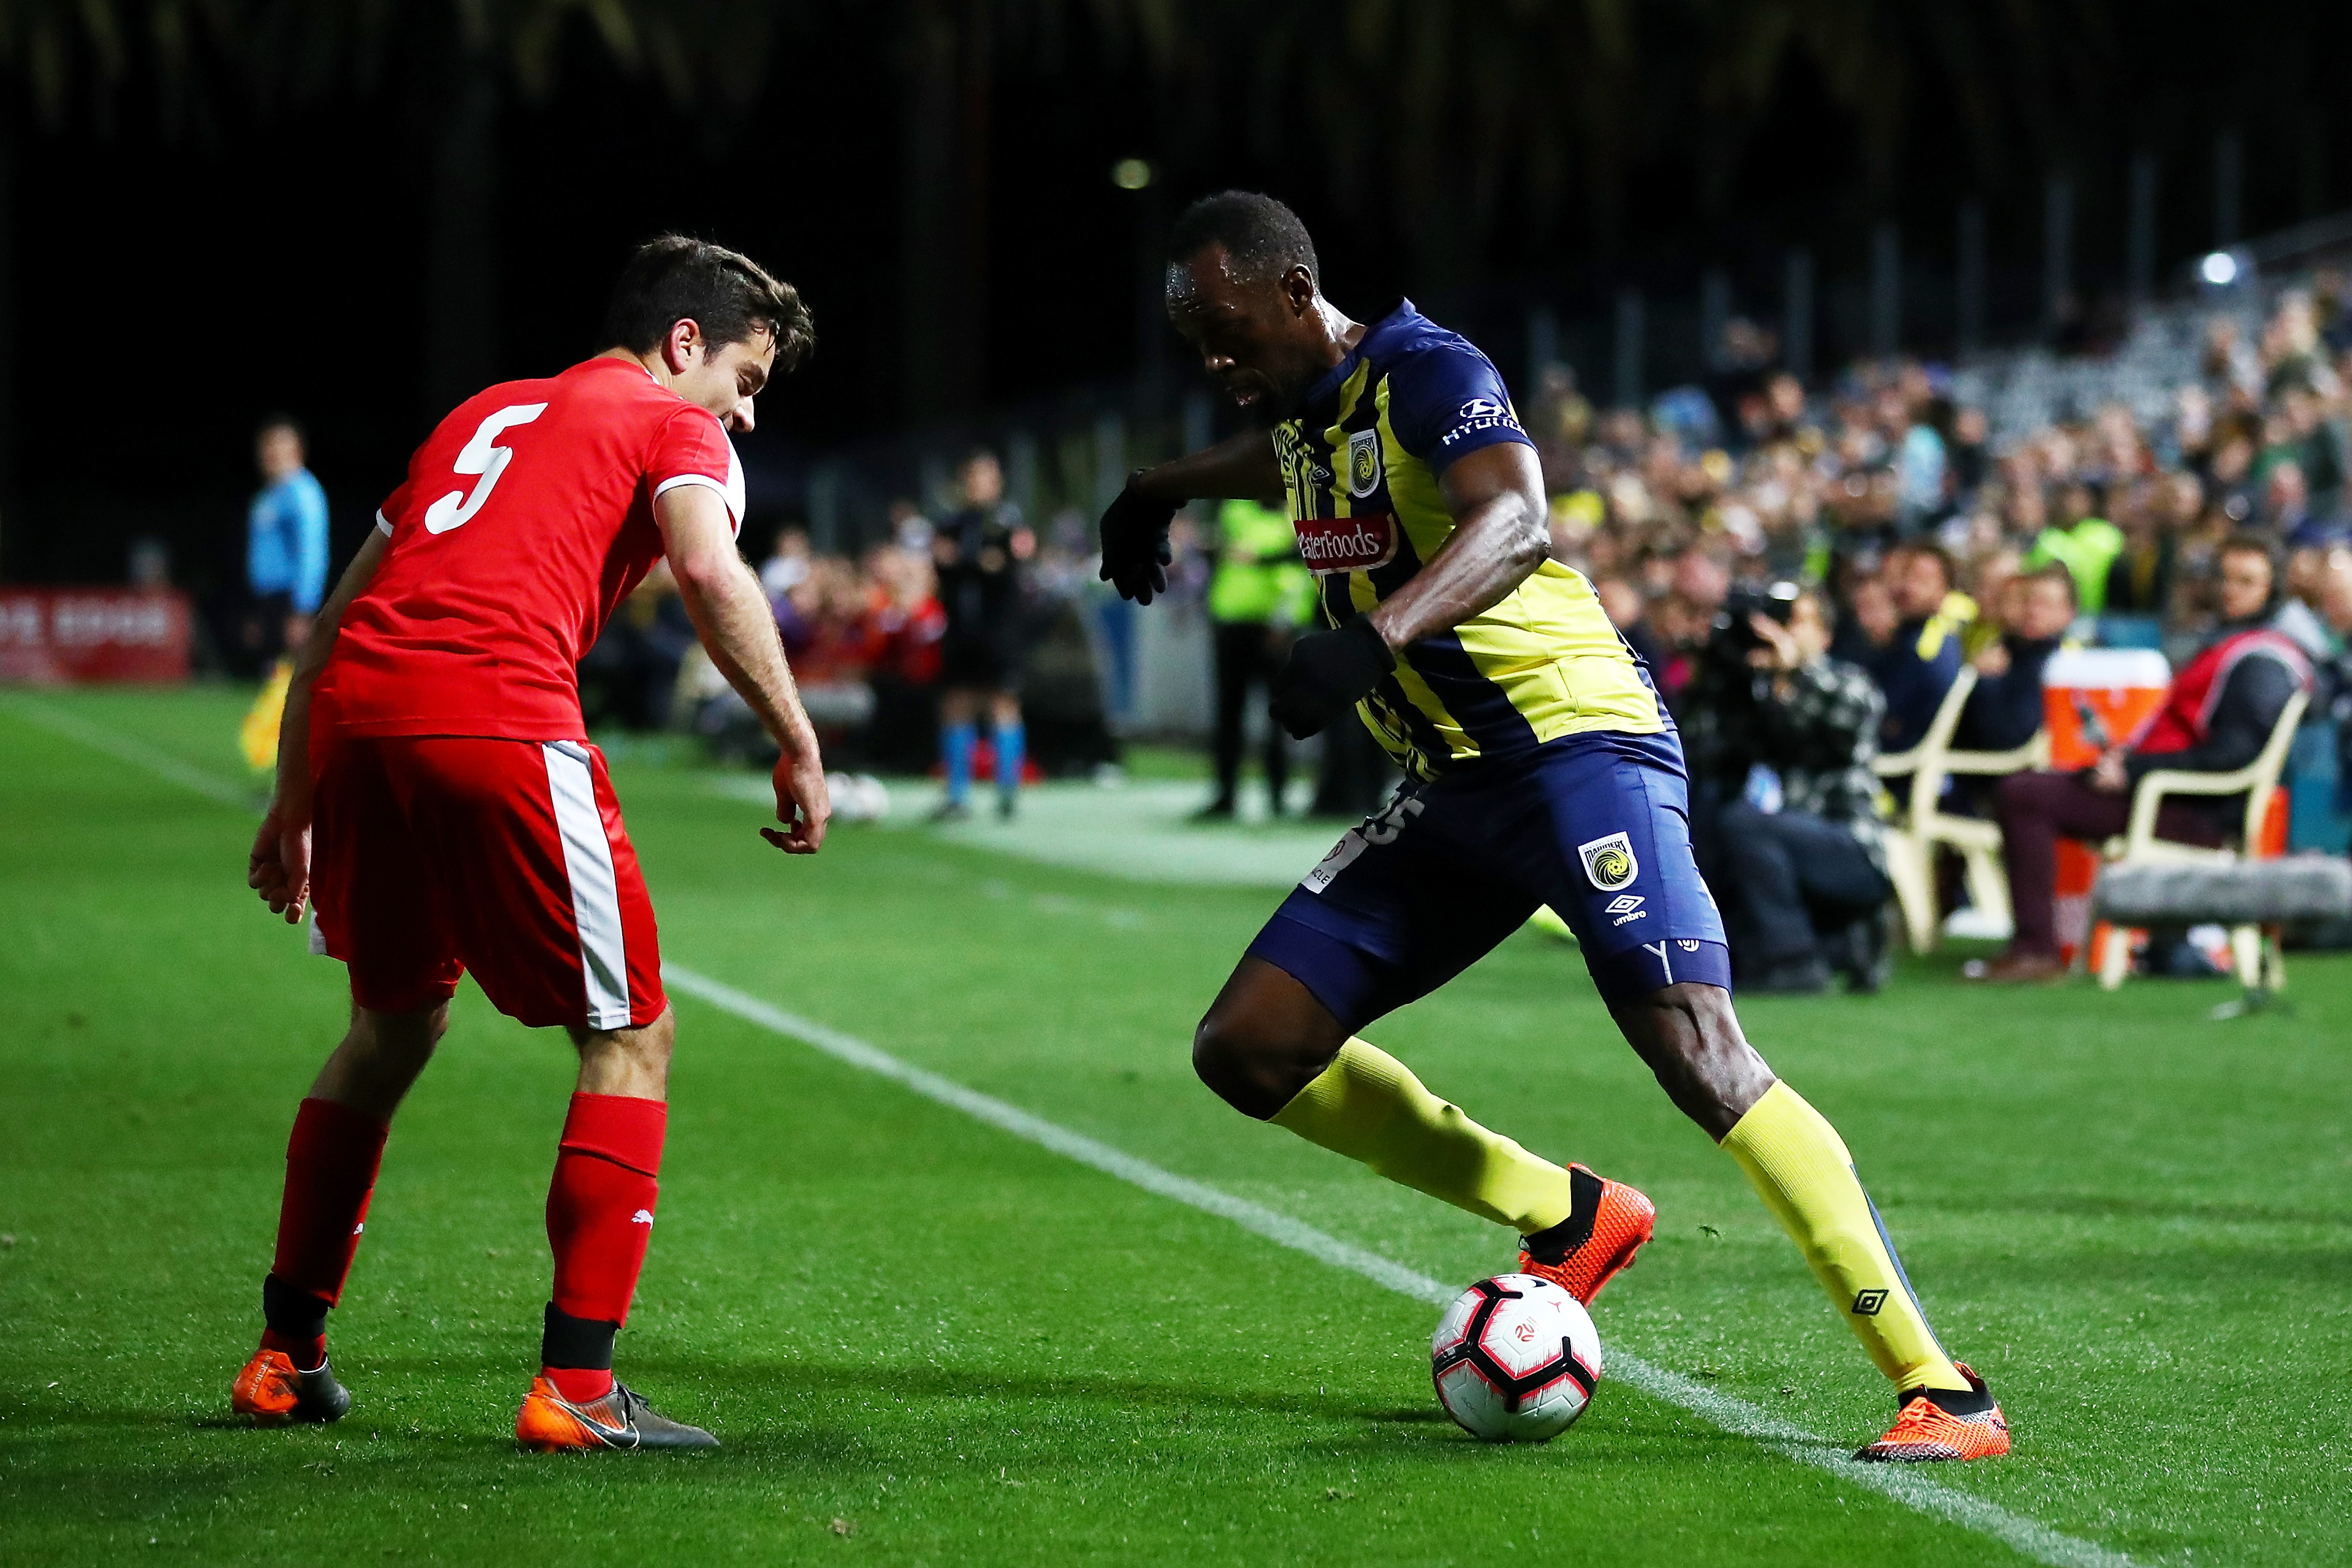 Watch: Usain Bolt Soccer Debut For Central Coast Mariners